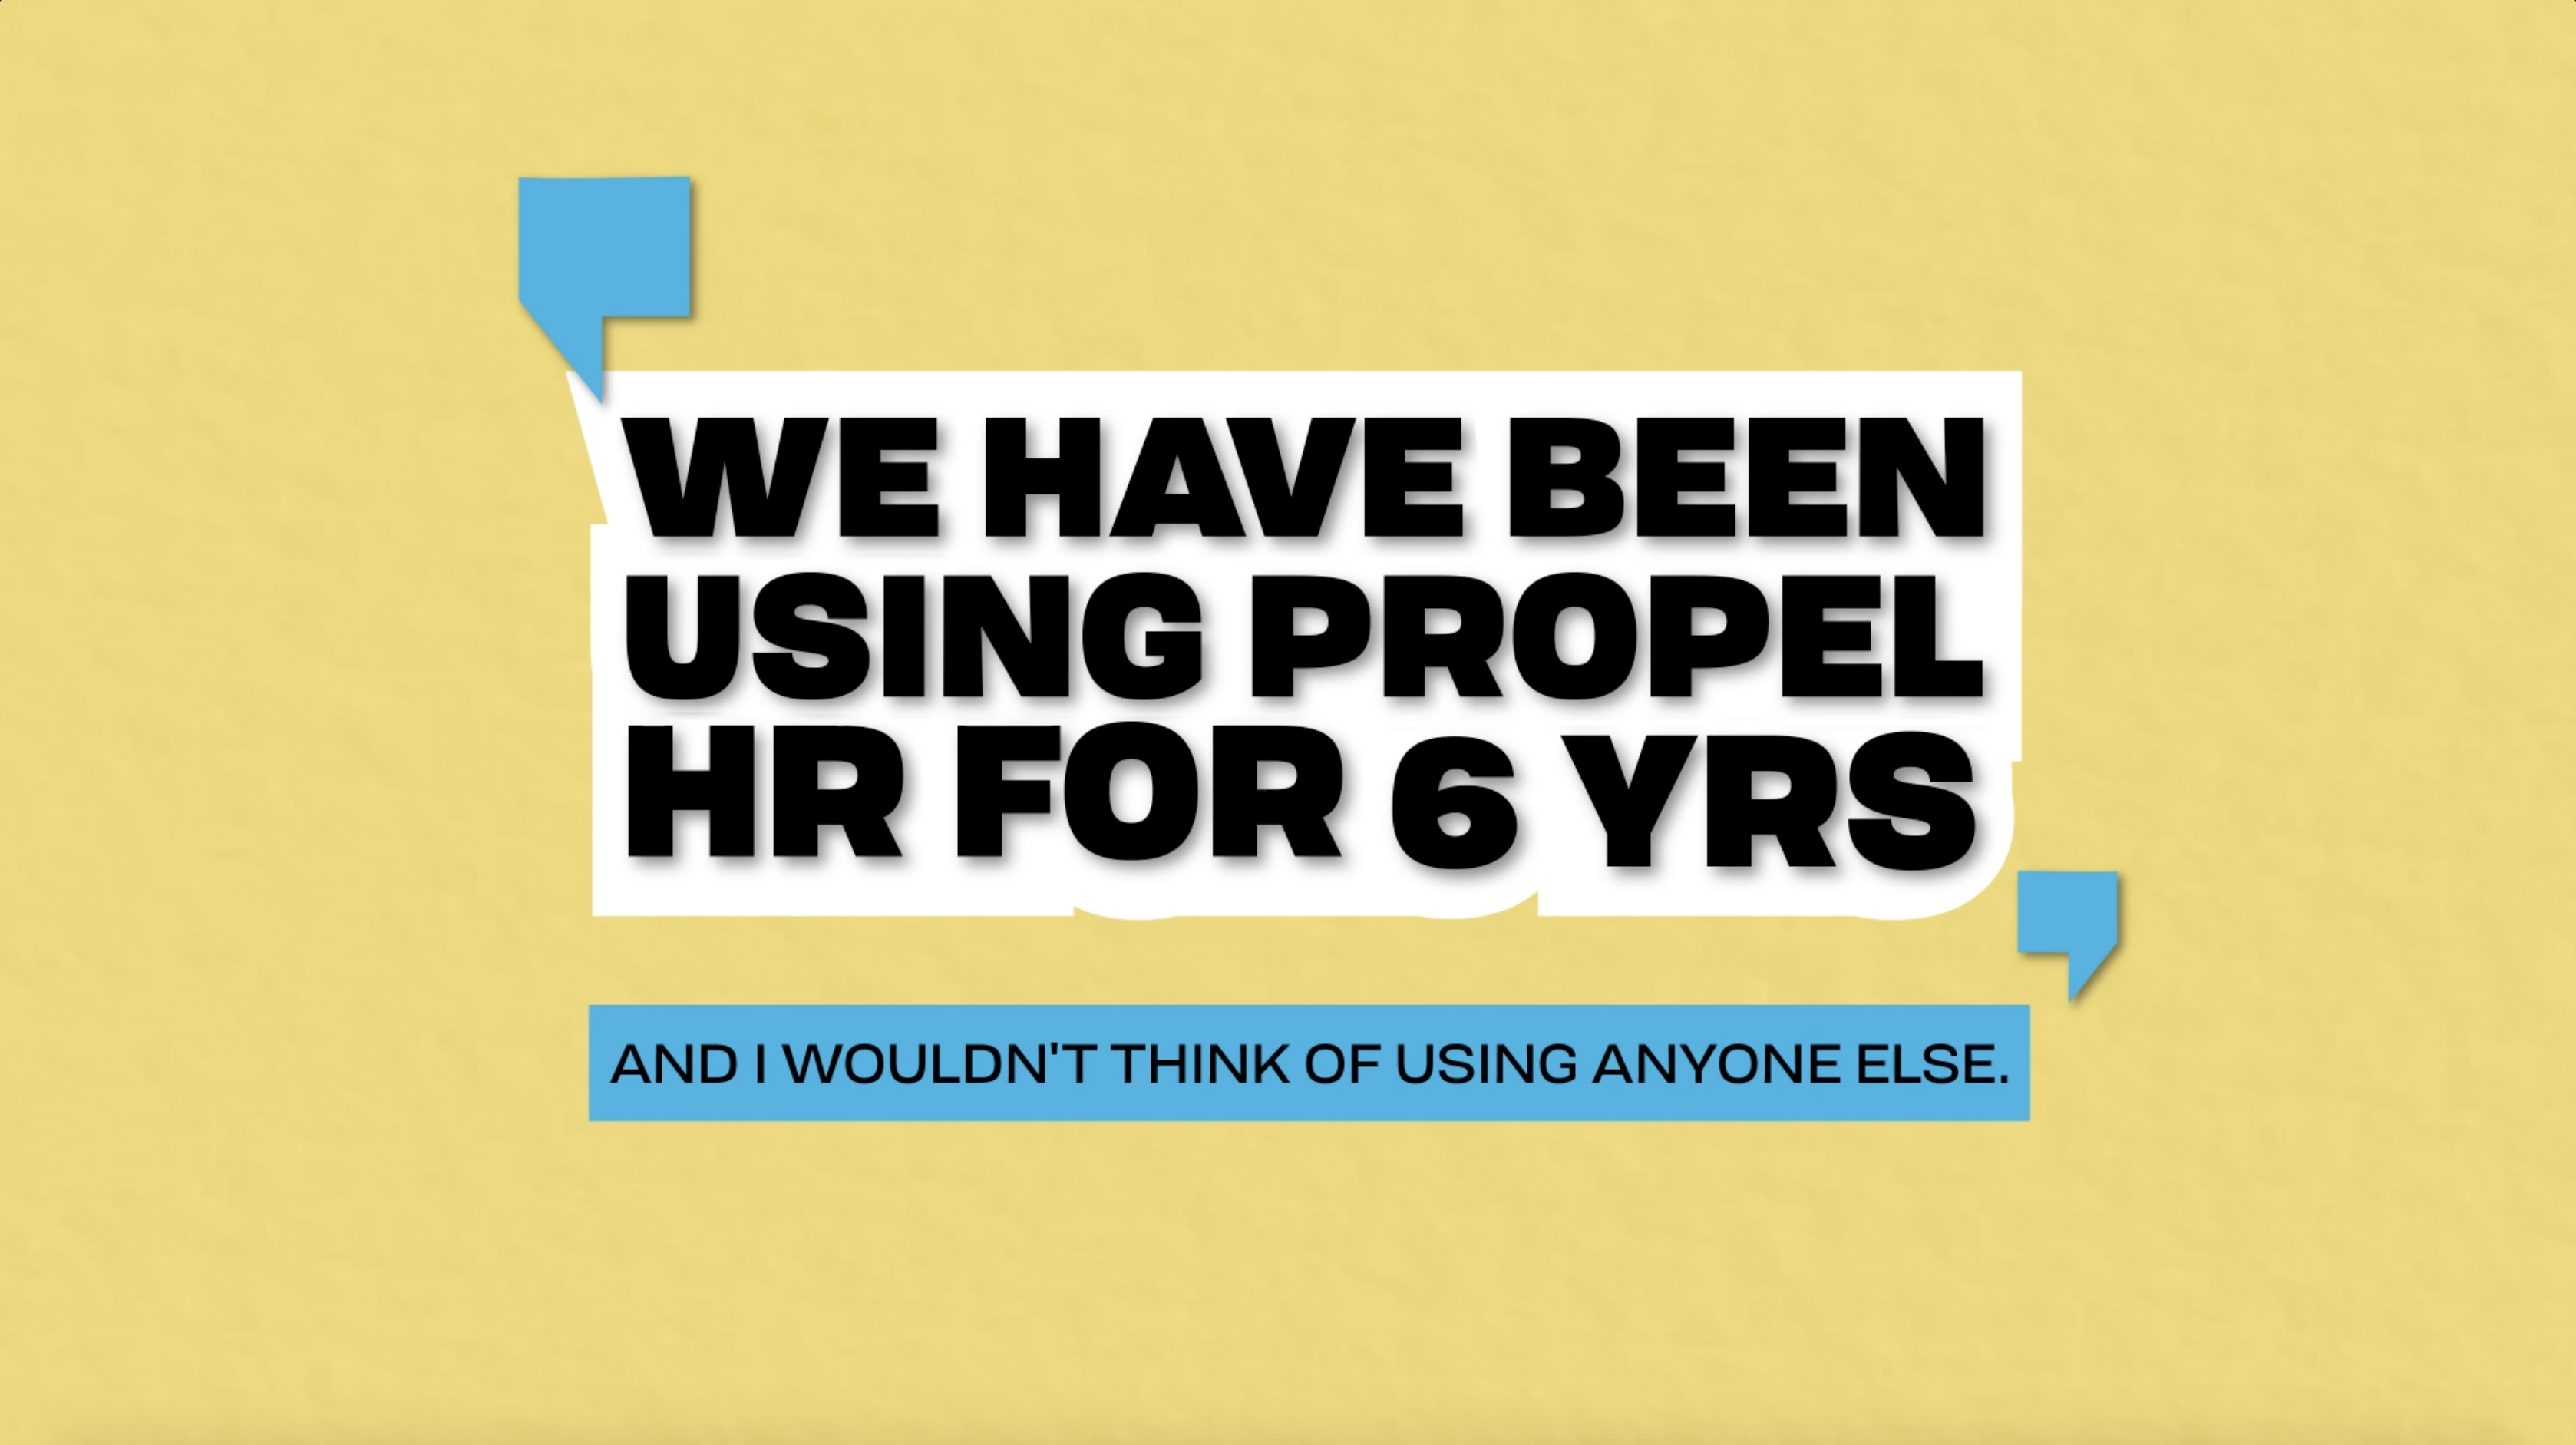 Video: What Our Clients Are Saying About Us